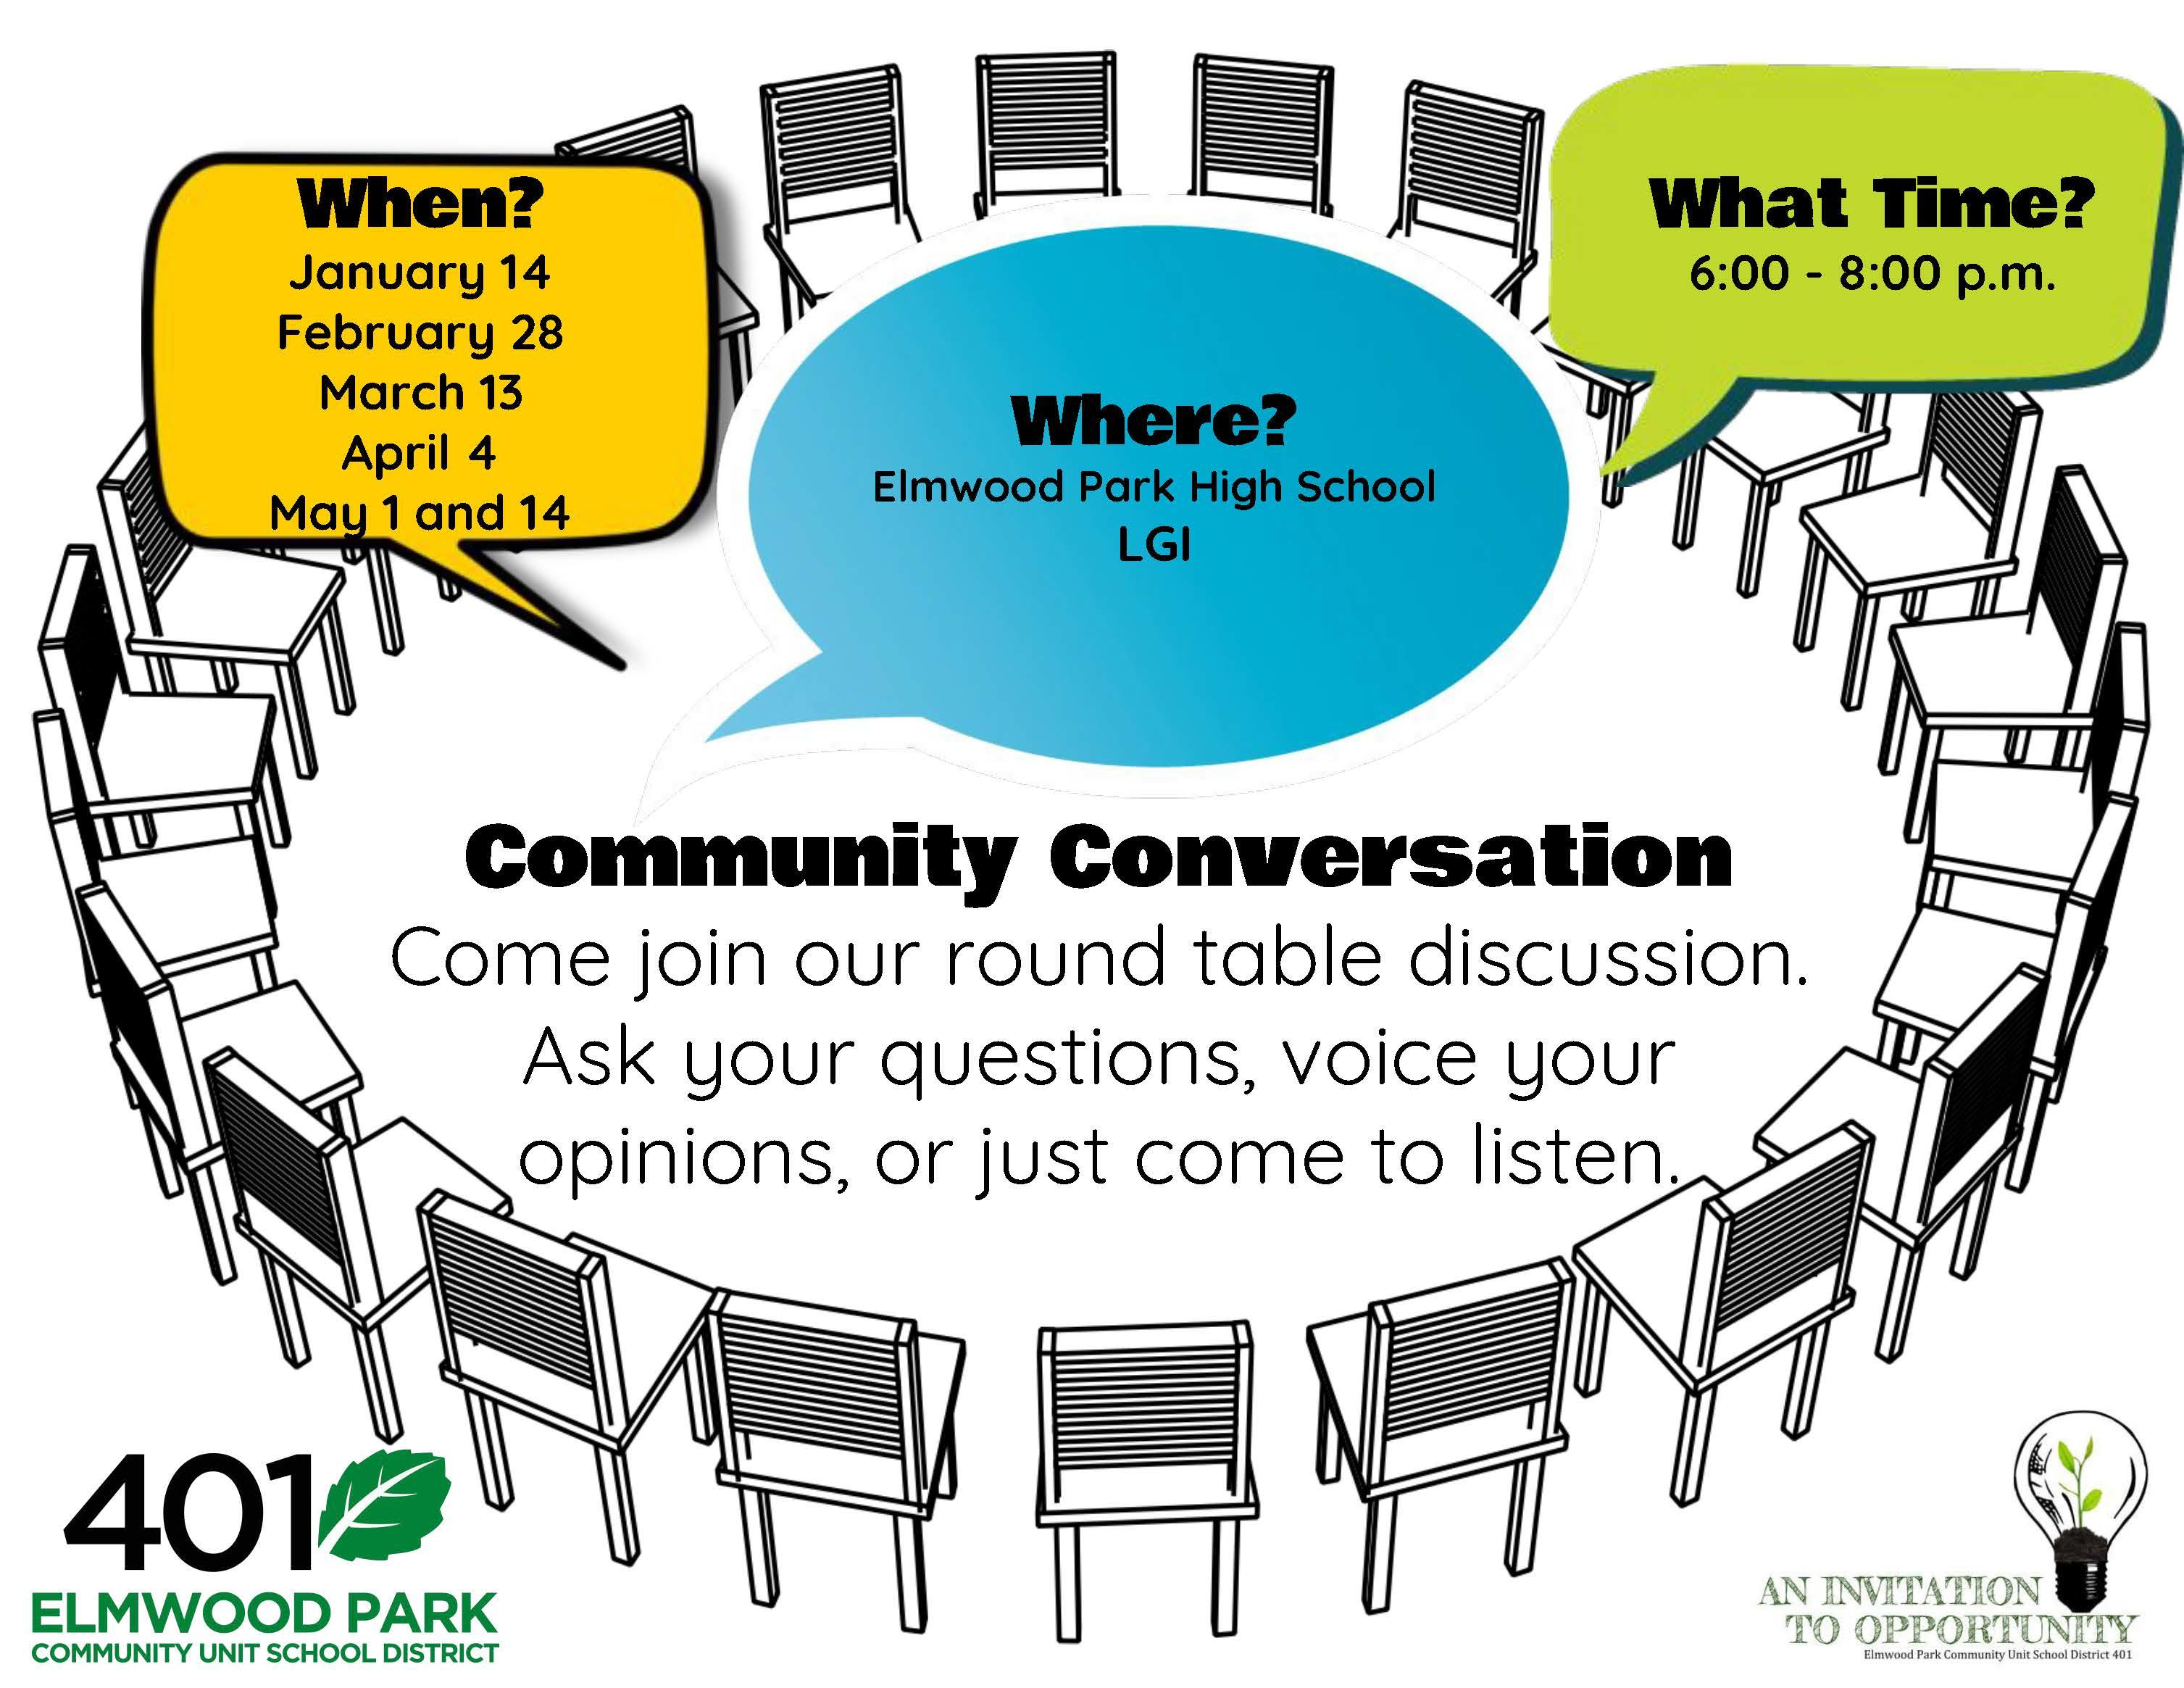 Community Conversation flyer